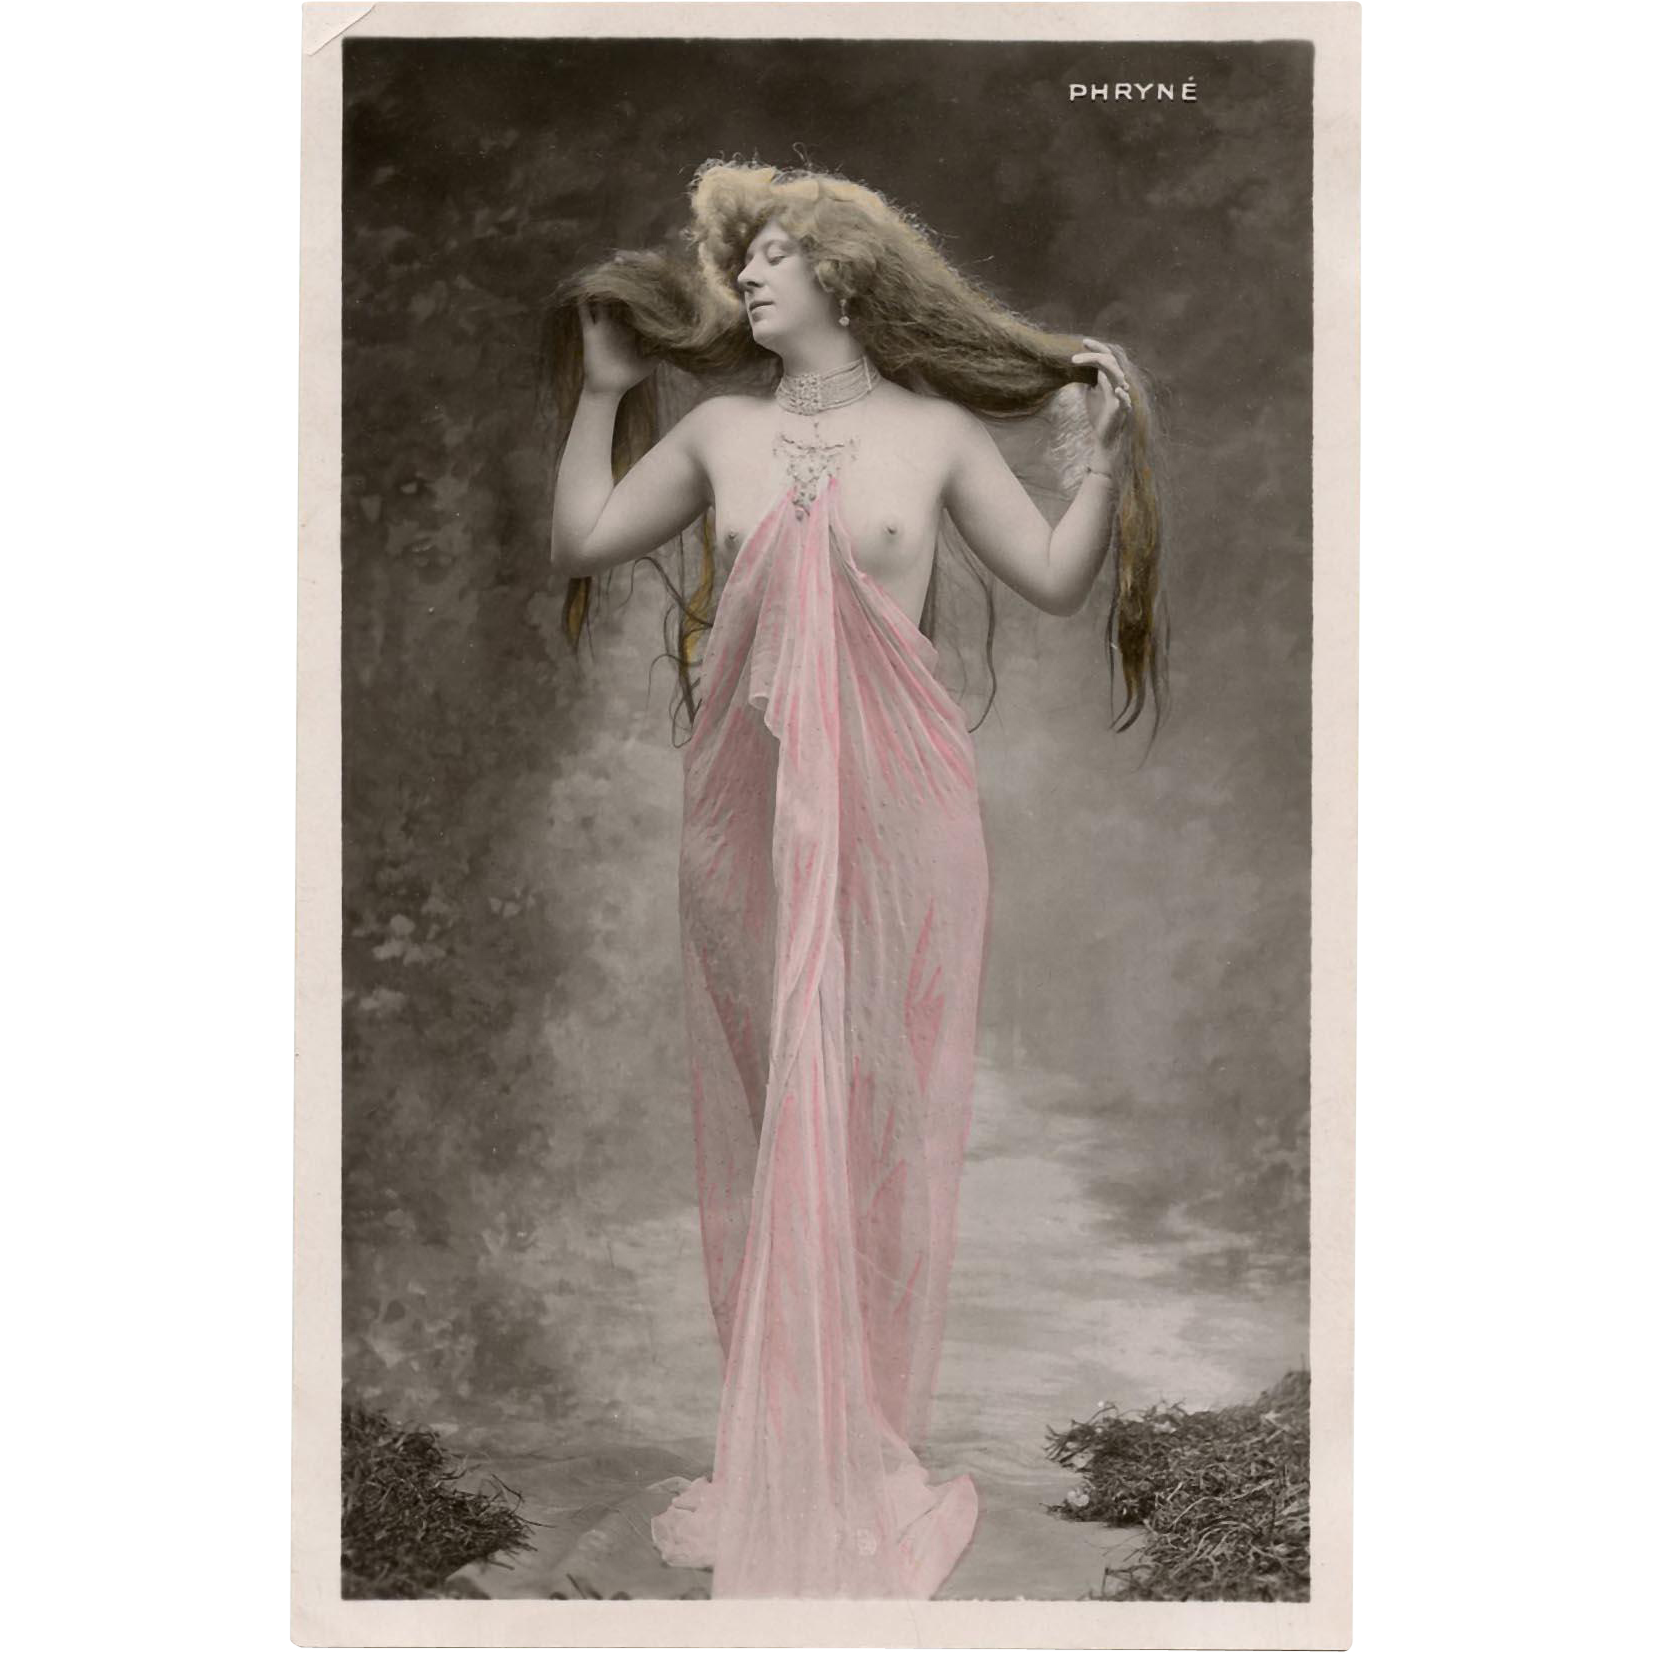 French Nude Real Photo Postcard Phryne Early 1900s Belle Epoque Beauty in Pink